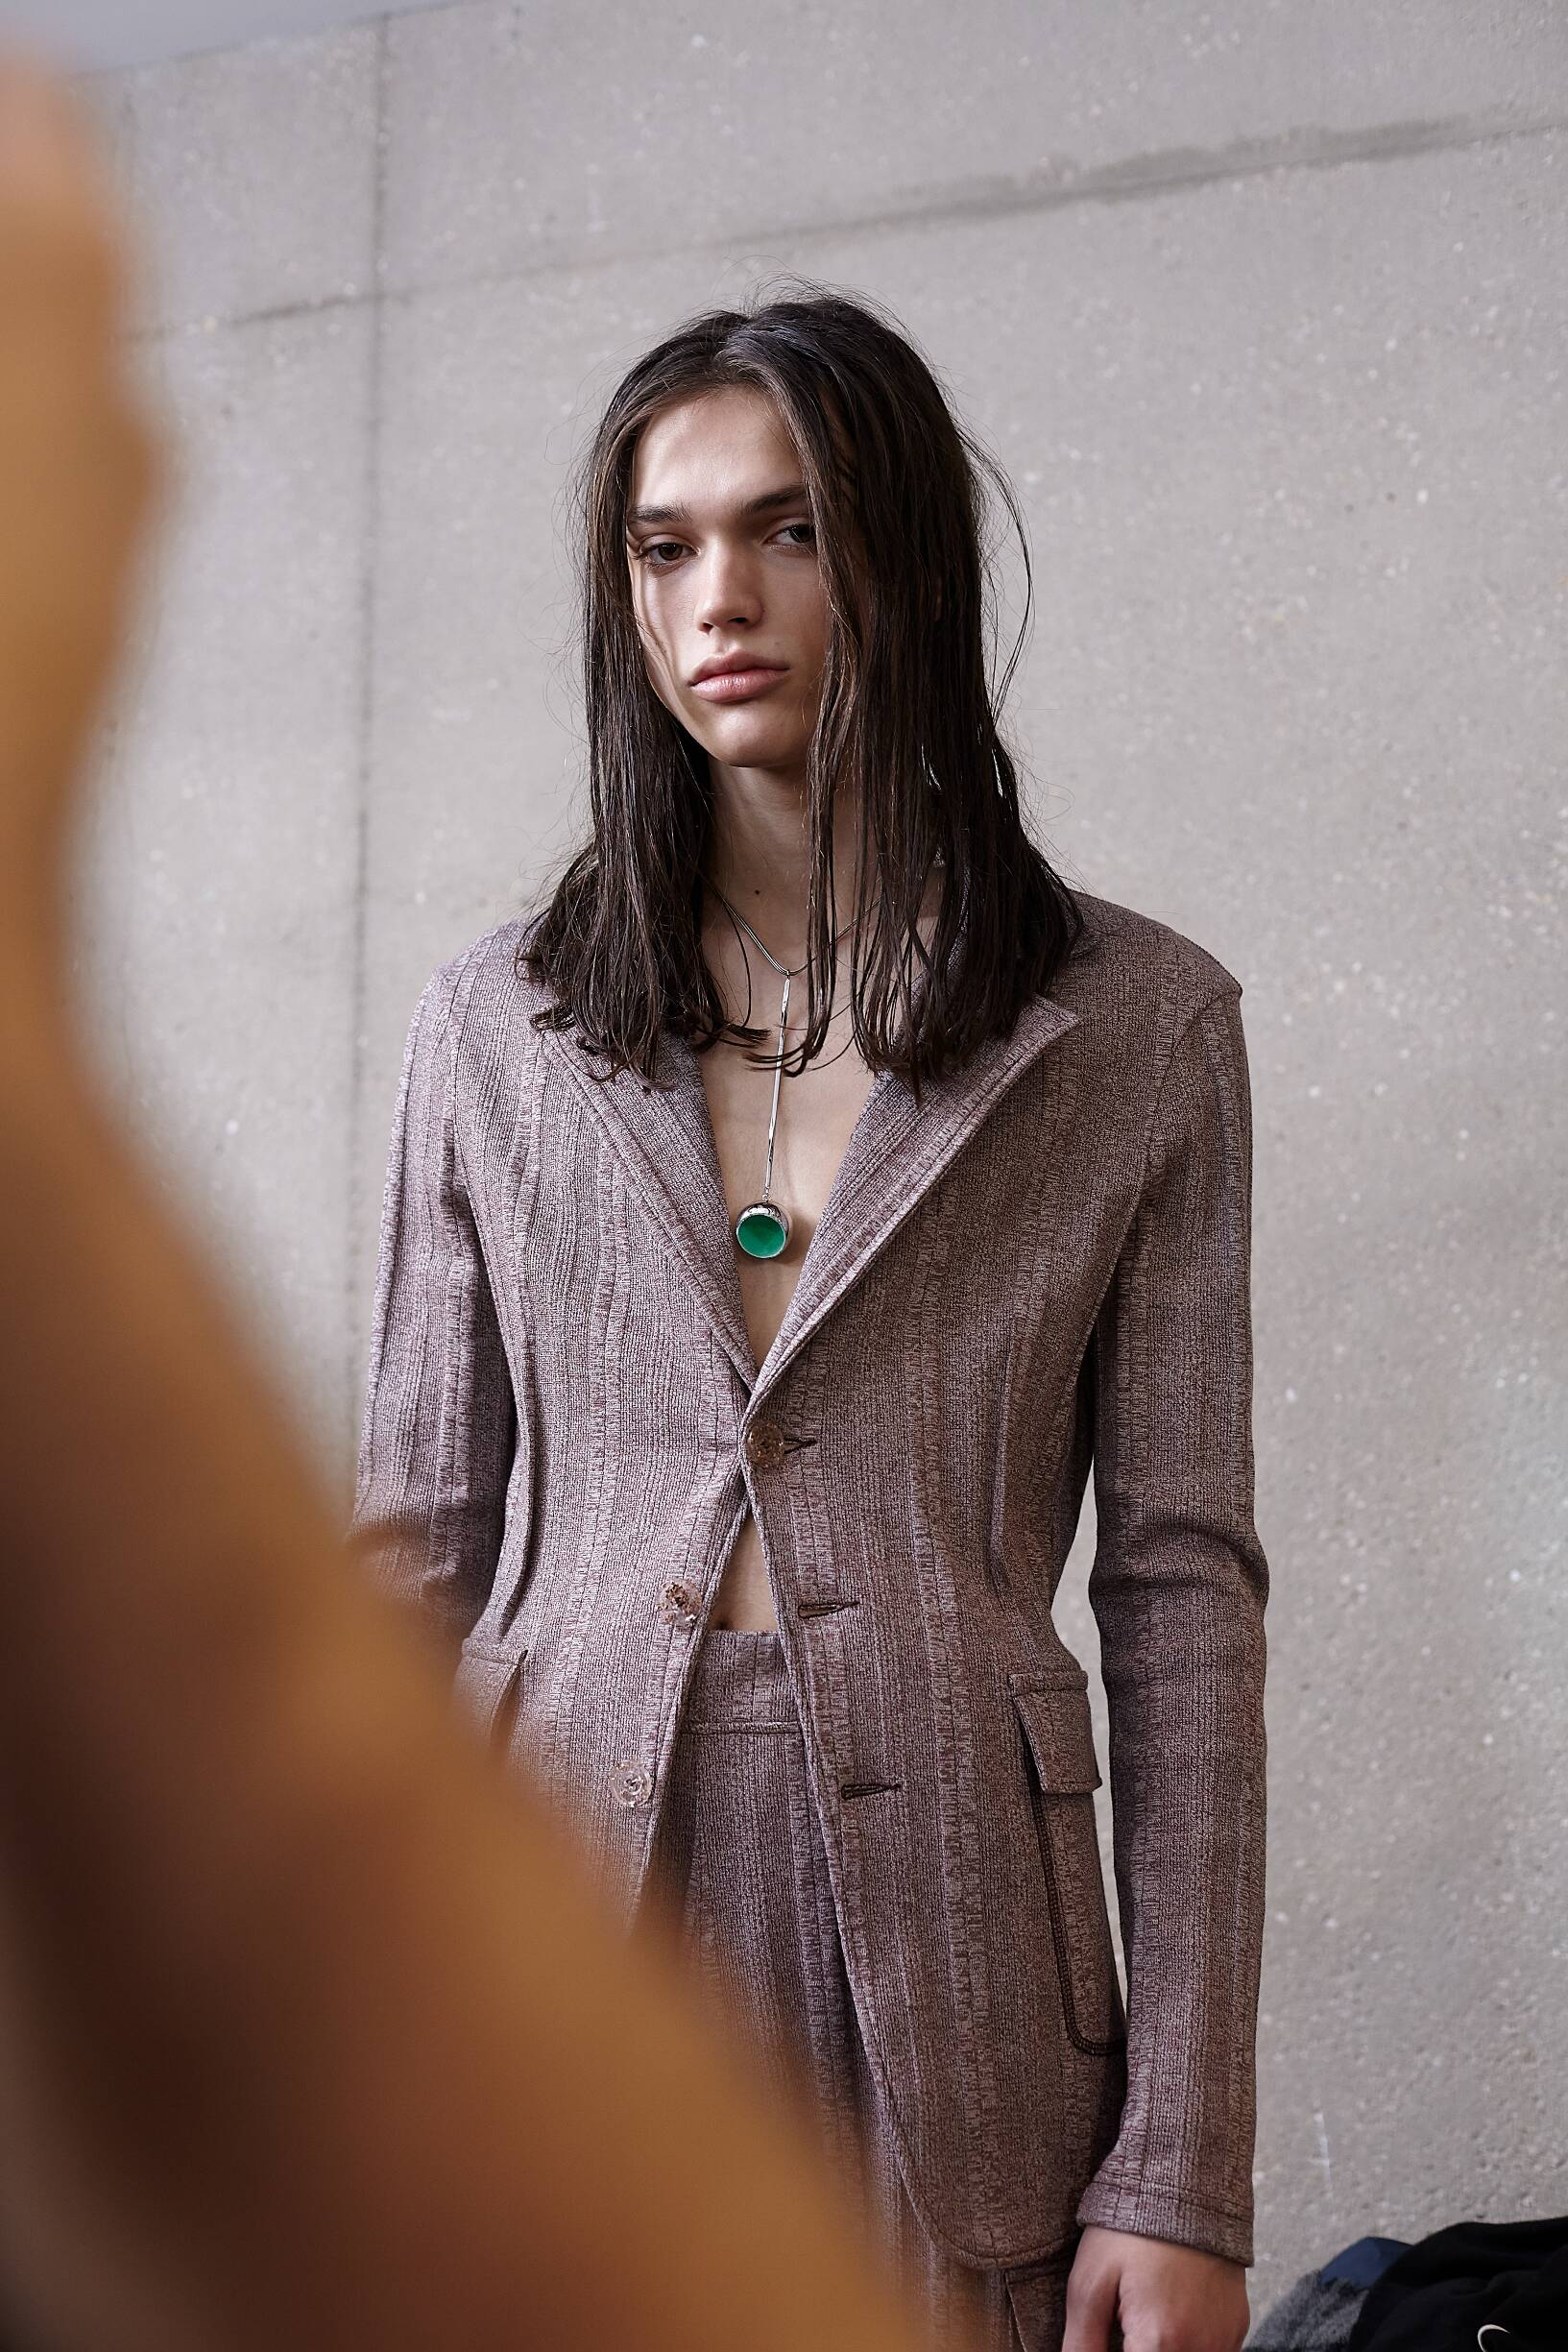 Fashion Model Backstage Acne Studios Fall Winter 2019 Collection